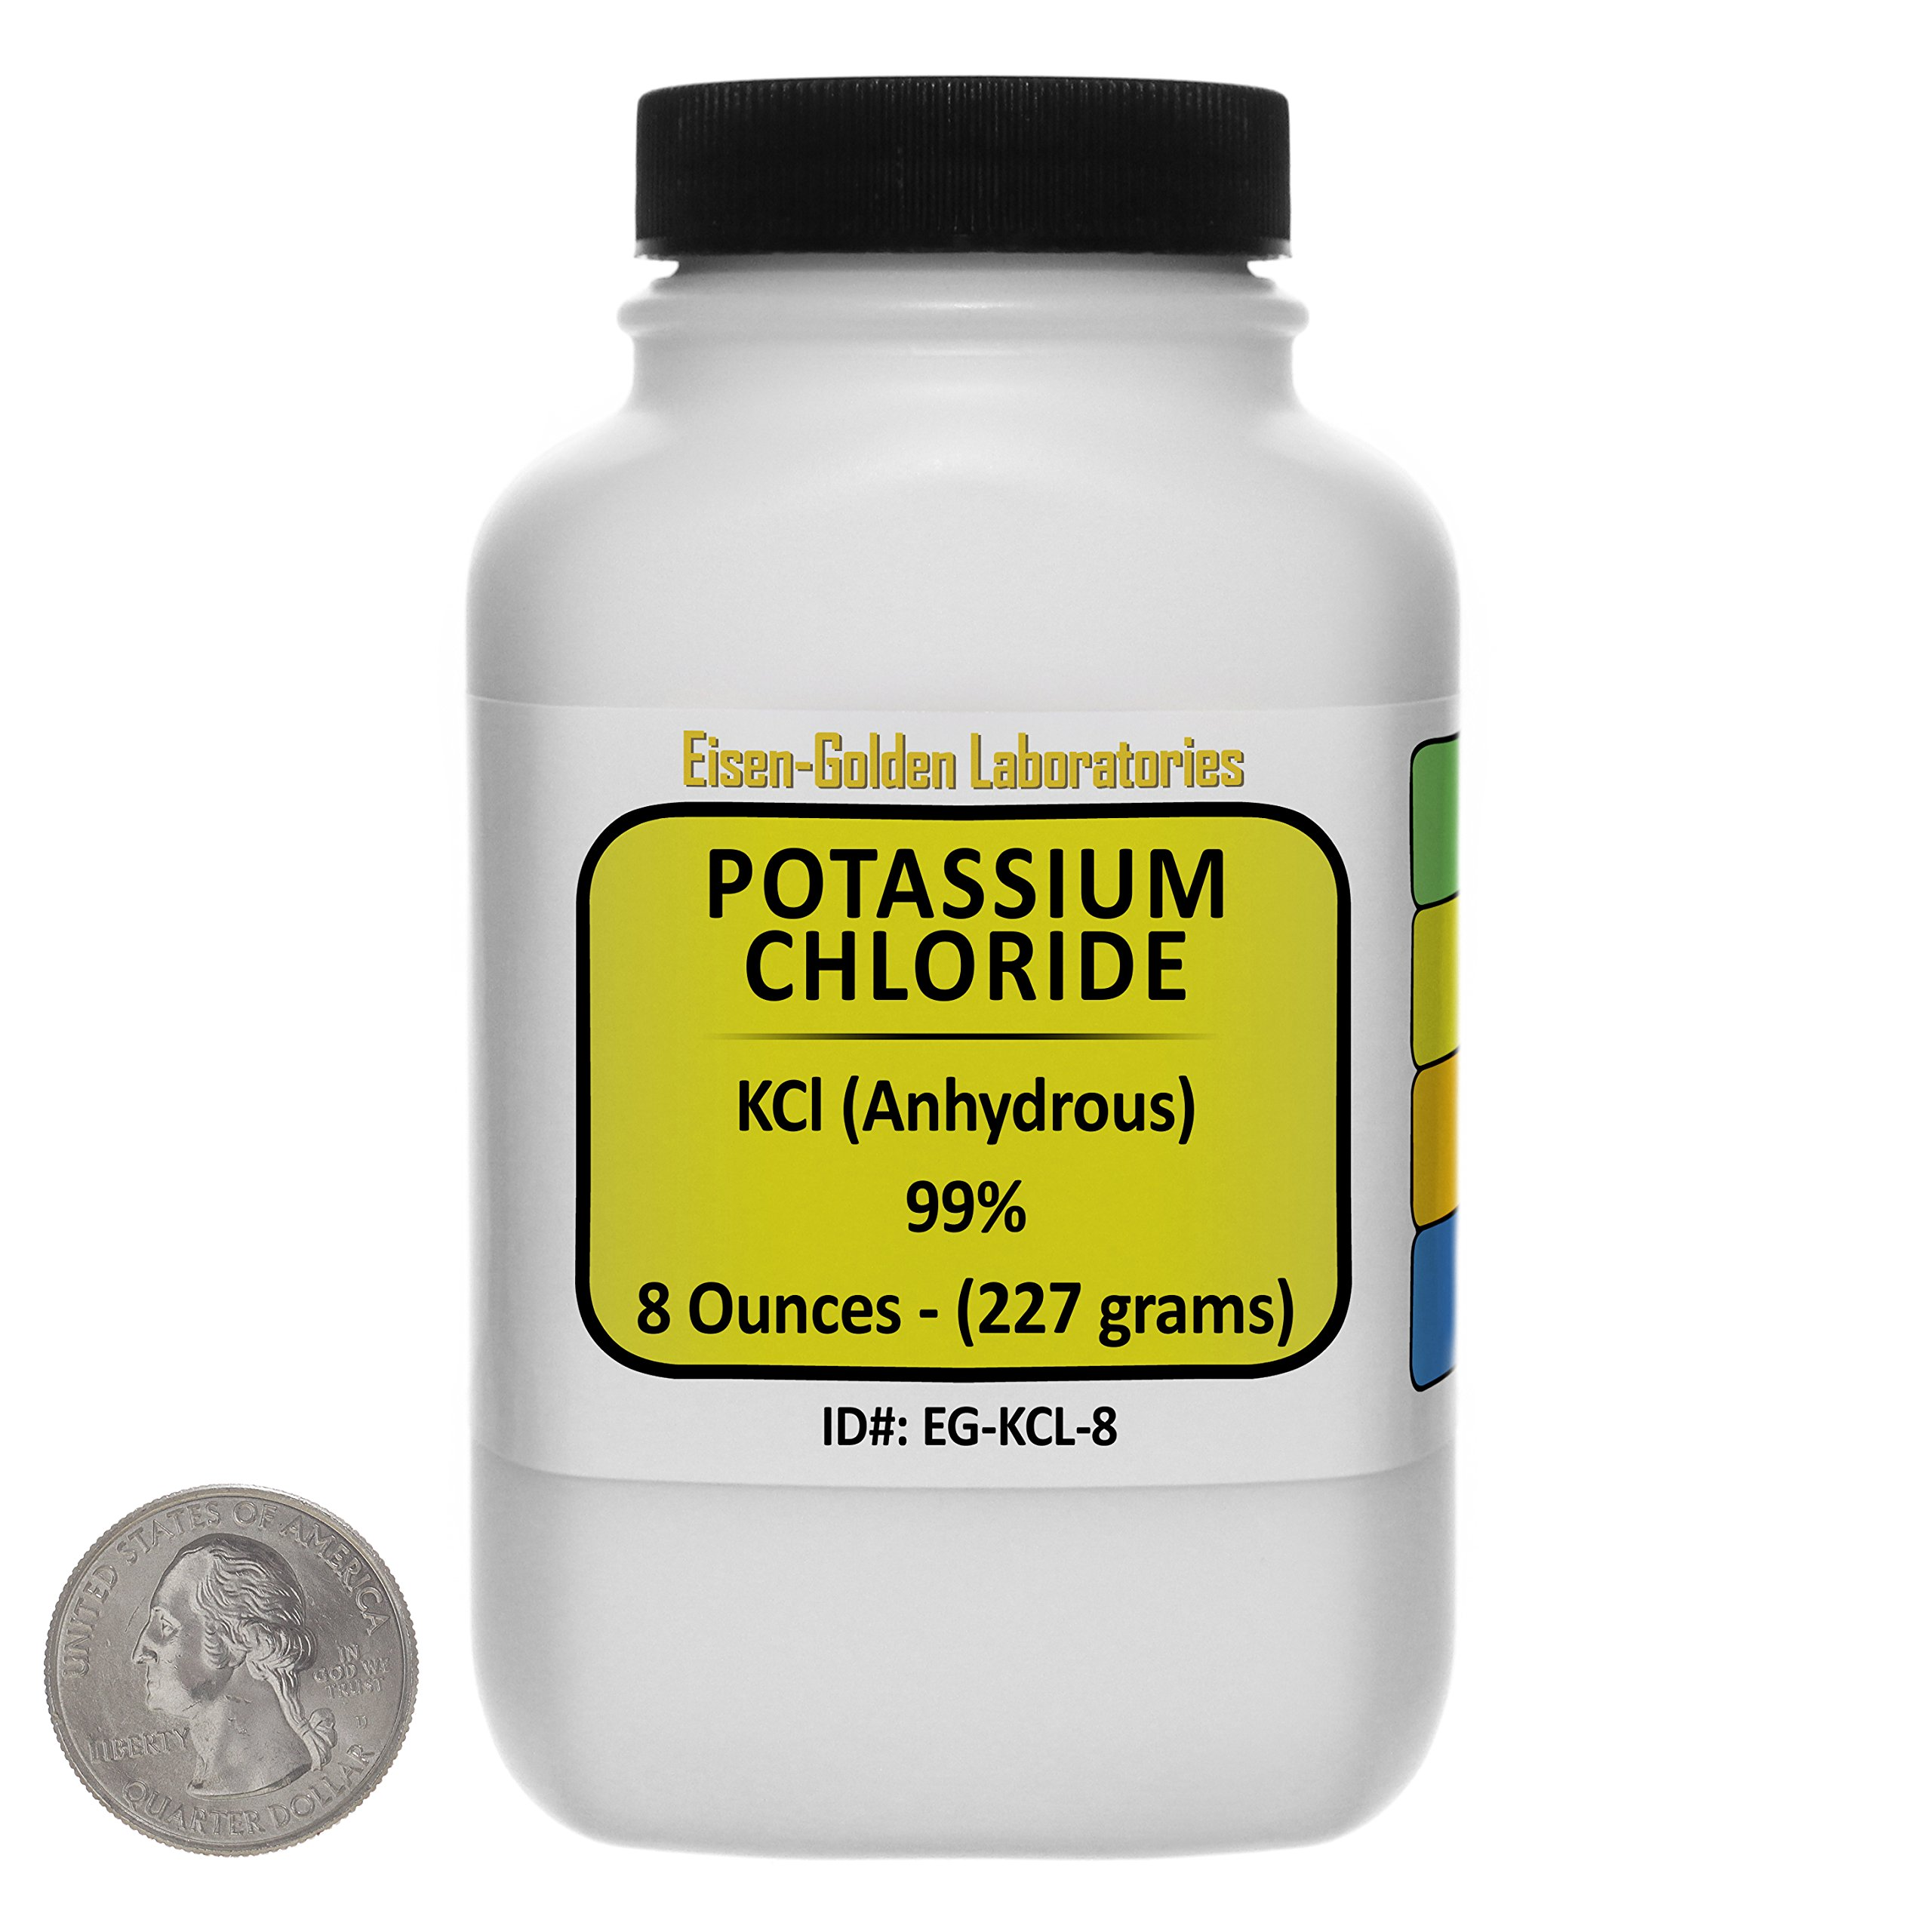 Potassium Chloride [KCl] 99% ACS Grade Powder 8 Oz in a Space-Saver Bottle USA by Eisen-Golden Laboratories